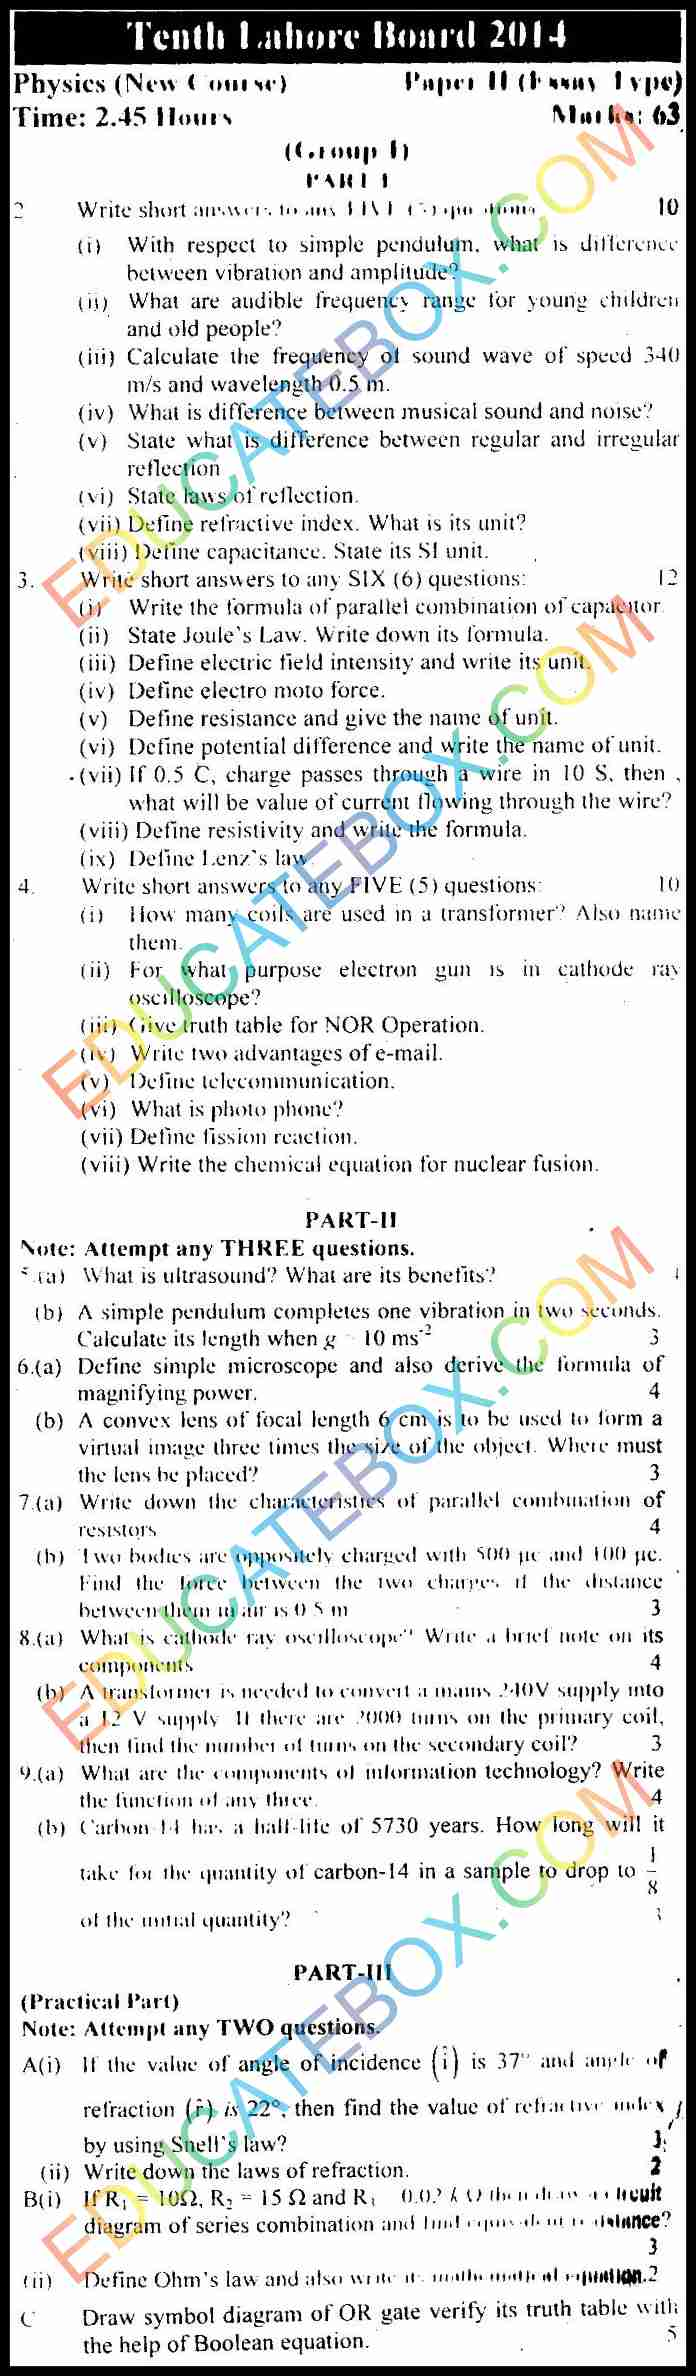 Past Paper 10th Class Physics Lahore Board 2014 English Medium Group 1 - Subjective Type